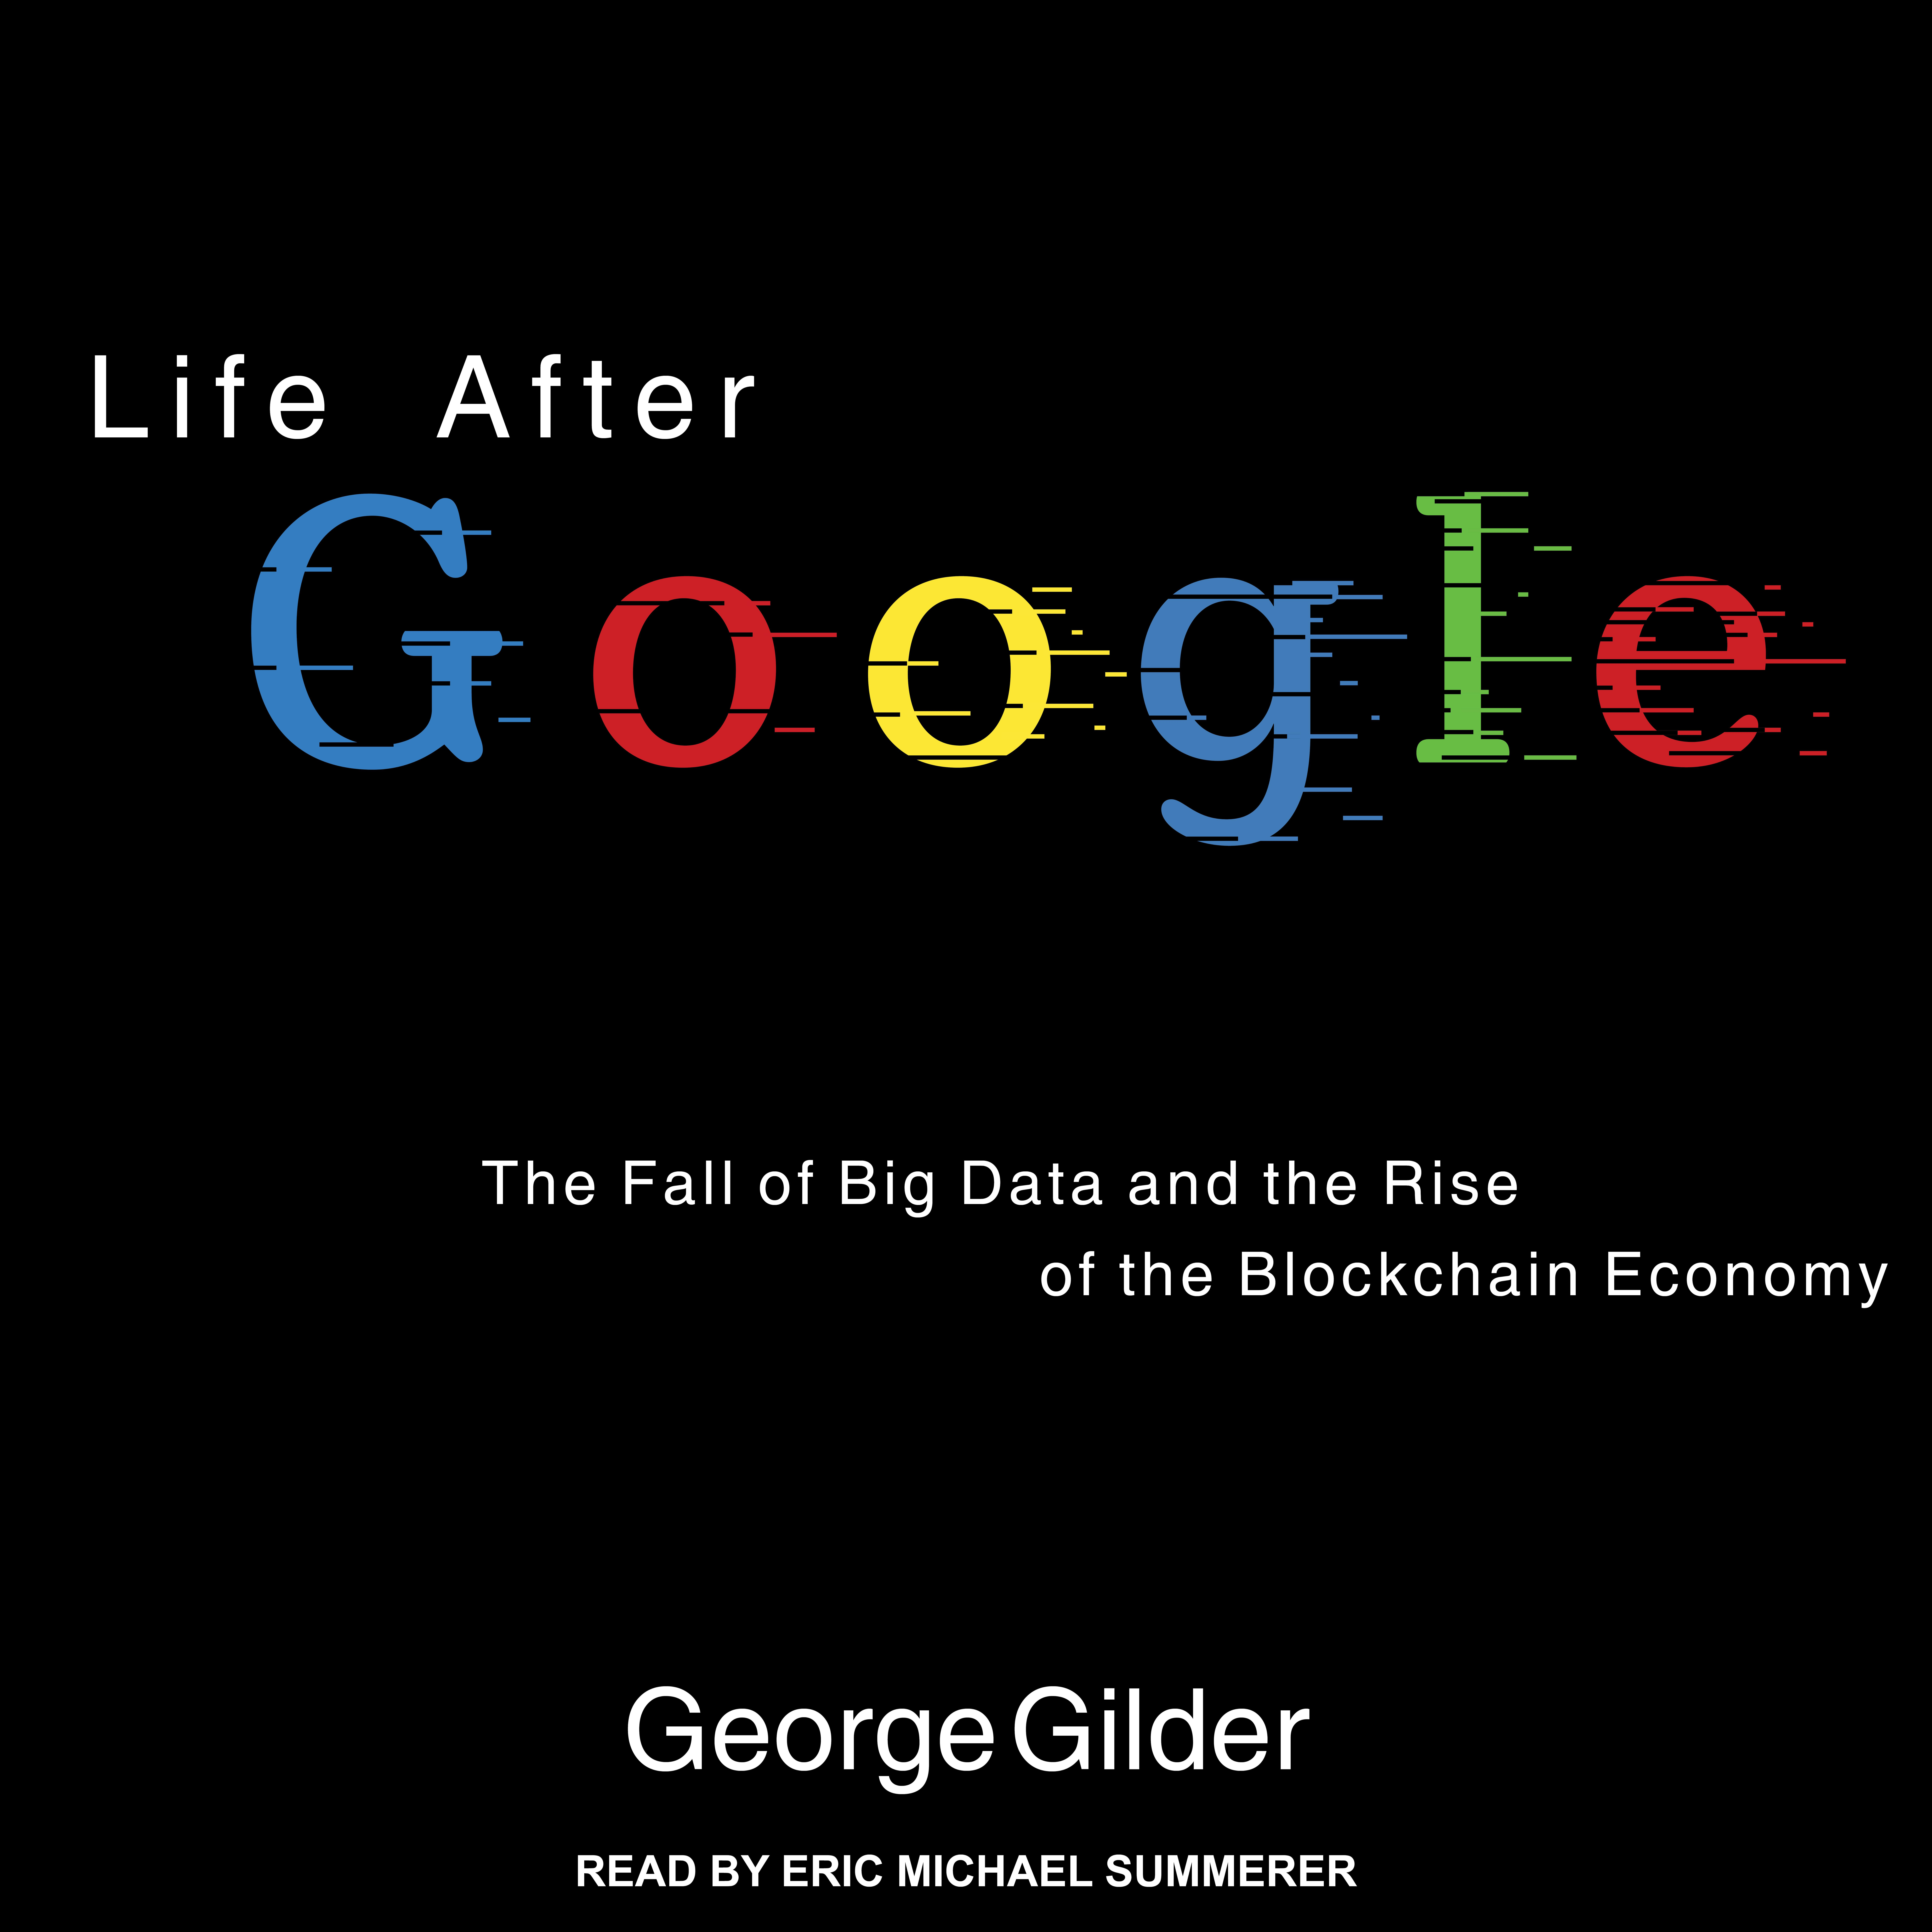 Life After Google: The Fall of Big Data and the Rise of the Blockchain Economy (Audiobook)